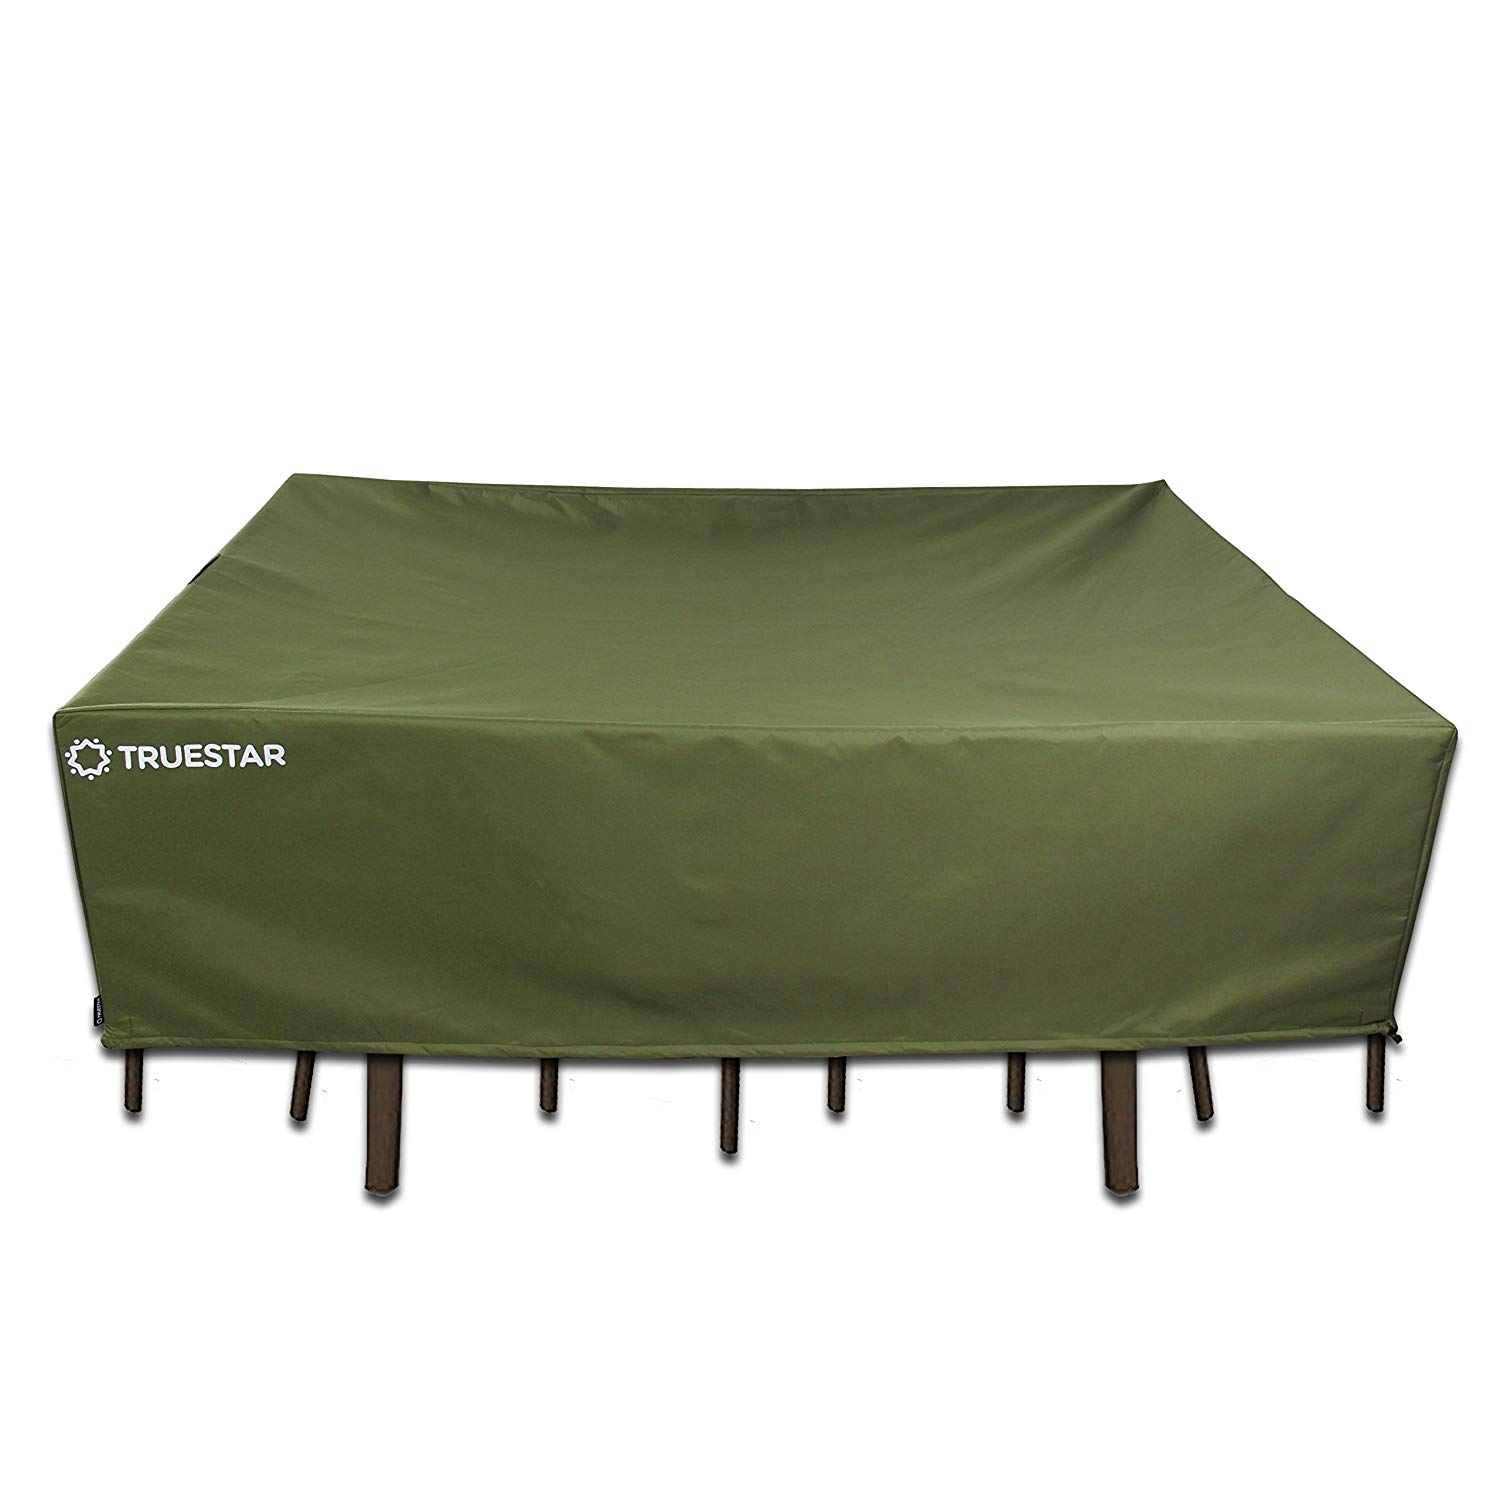 Cheap Outdoor Table And Chair Cover Find Outdoor Table And Chair